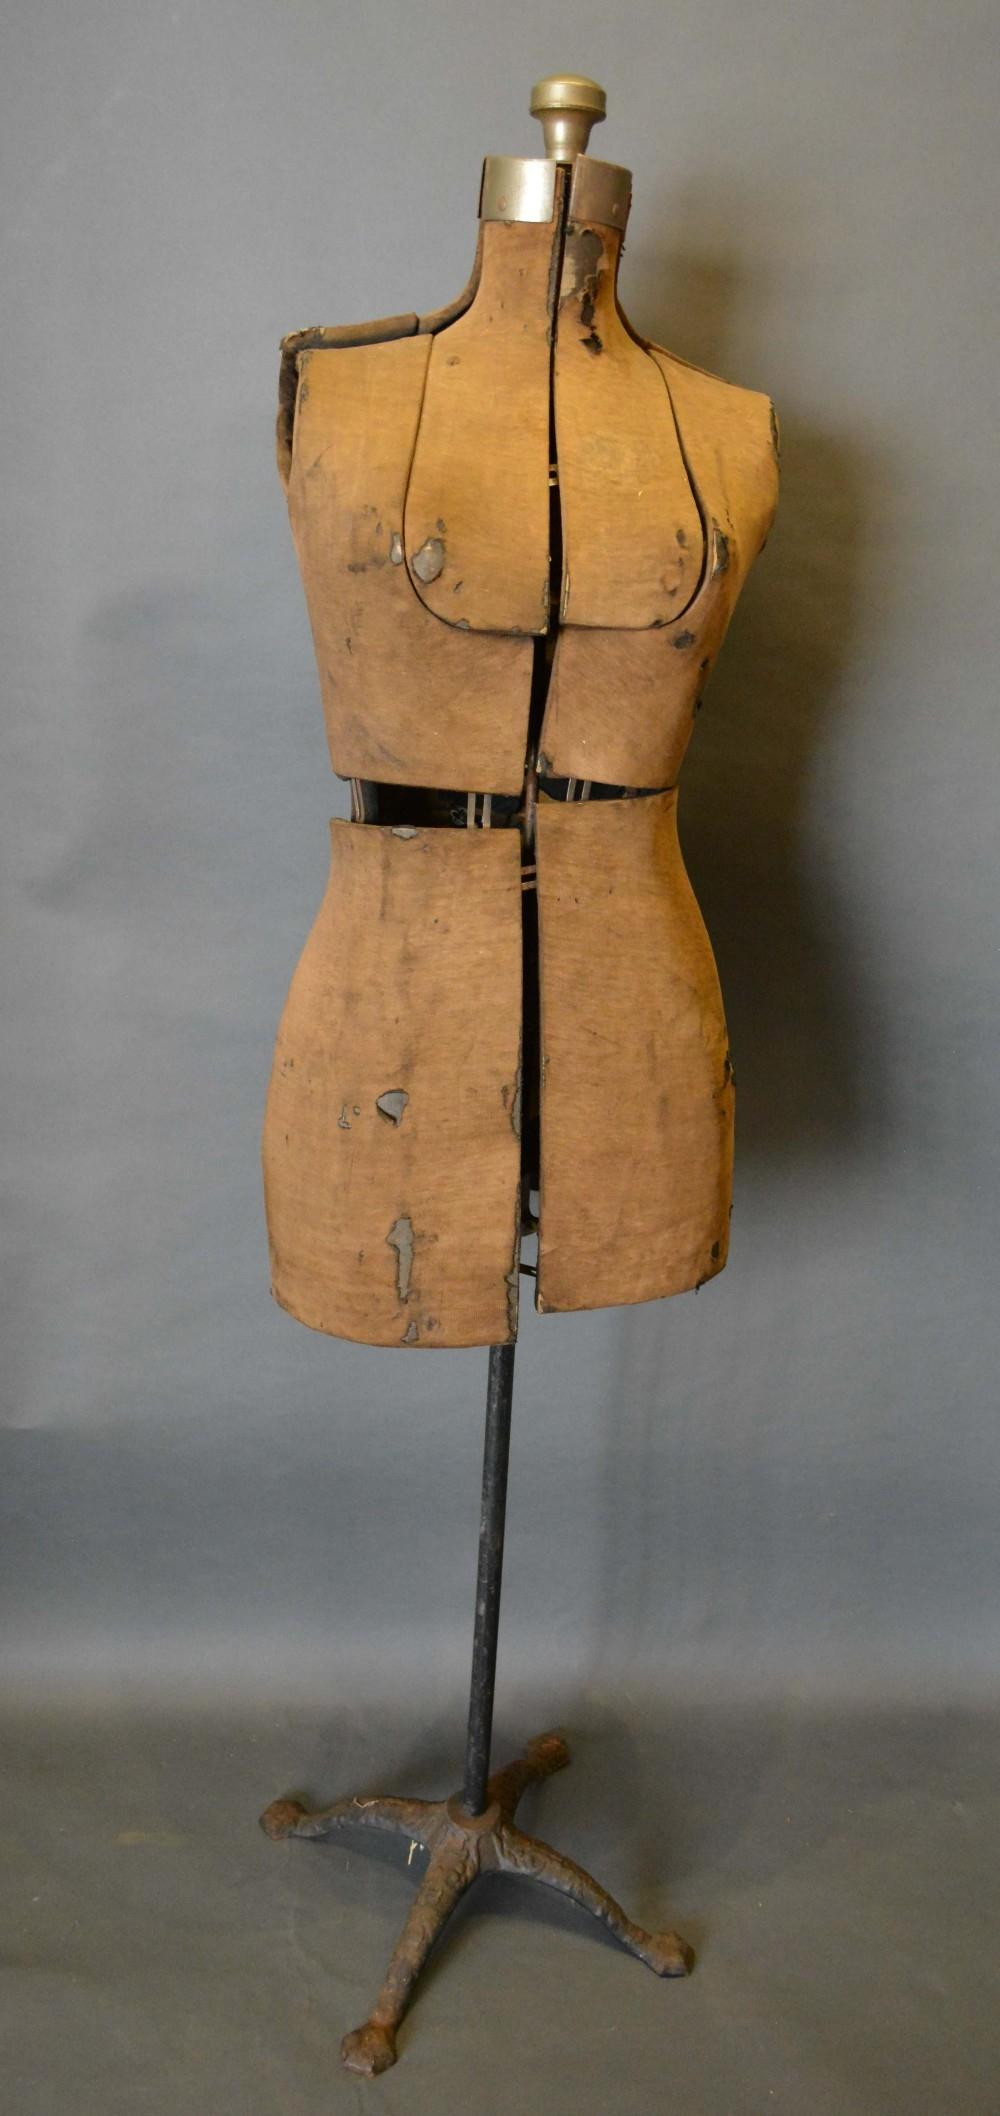 Lot 297 - An Early Tailors Dummy with wrought iron stand, 150cm tall